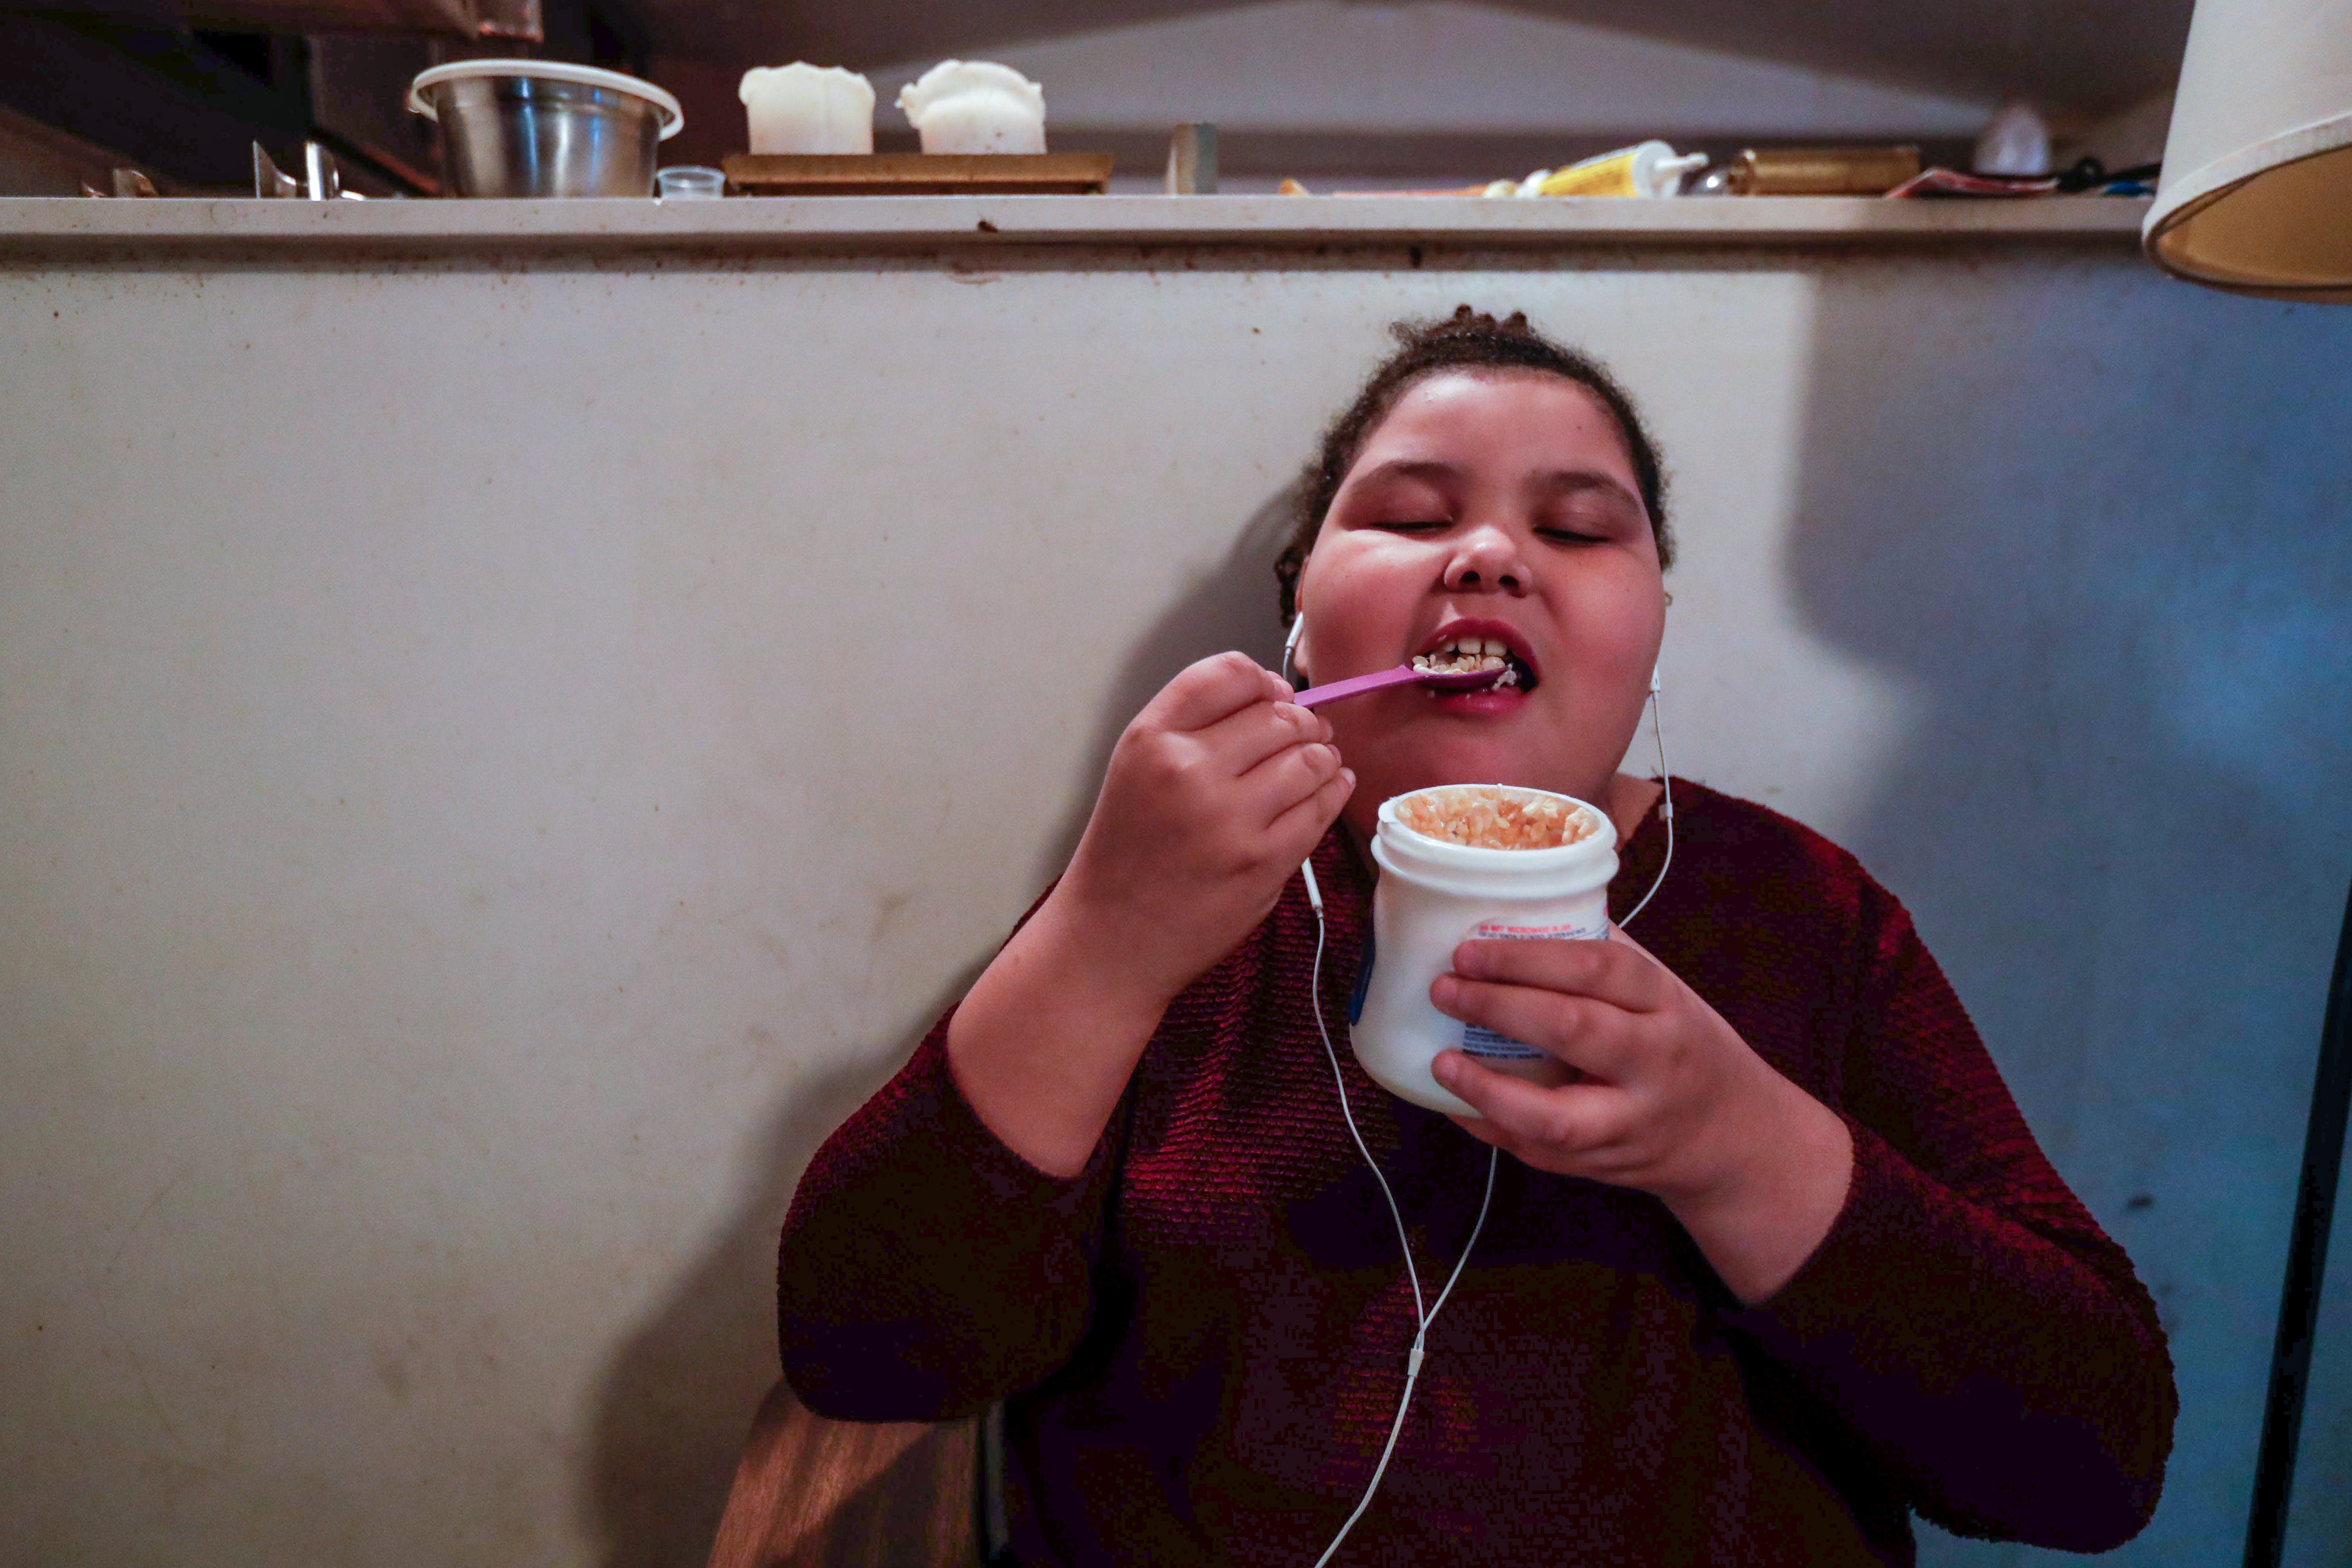 Vivianna Hughes, 9, sits at a school desk in the living room of the family's mobile home while eating marshmallow fluff and Rice Krispies cereal as an afternoon snack. A cockroach scurries along the ledge of the counter above Vivanna's right shoulder.